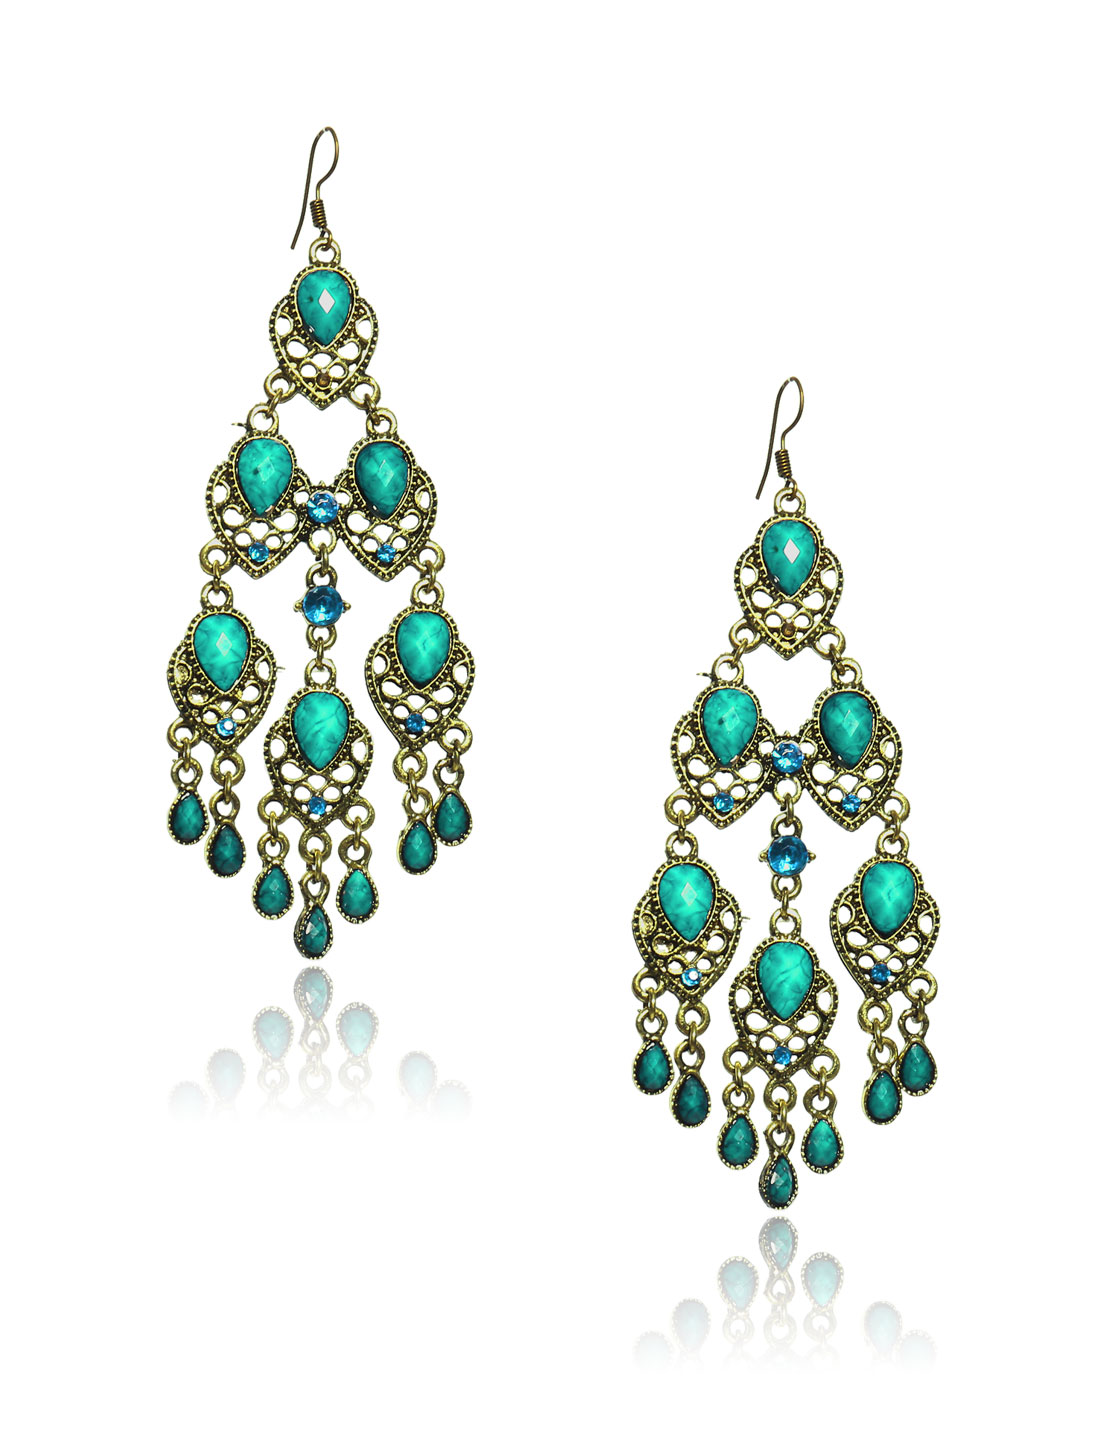 Women Retro Cyan three-layer Shaped Crystal Resin Drop Dangle Hook Earring Ear Stud